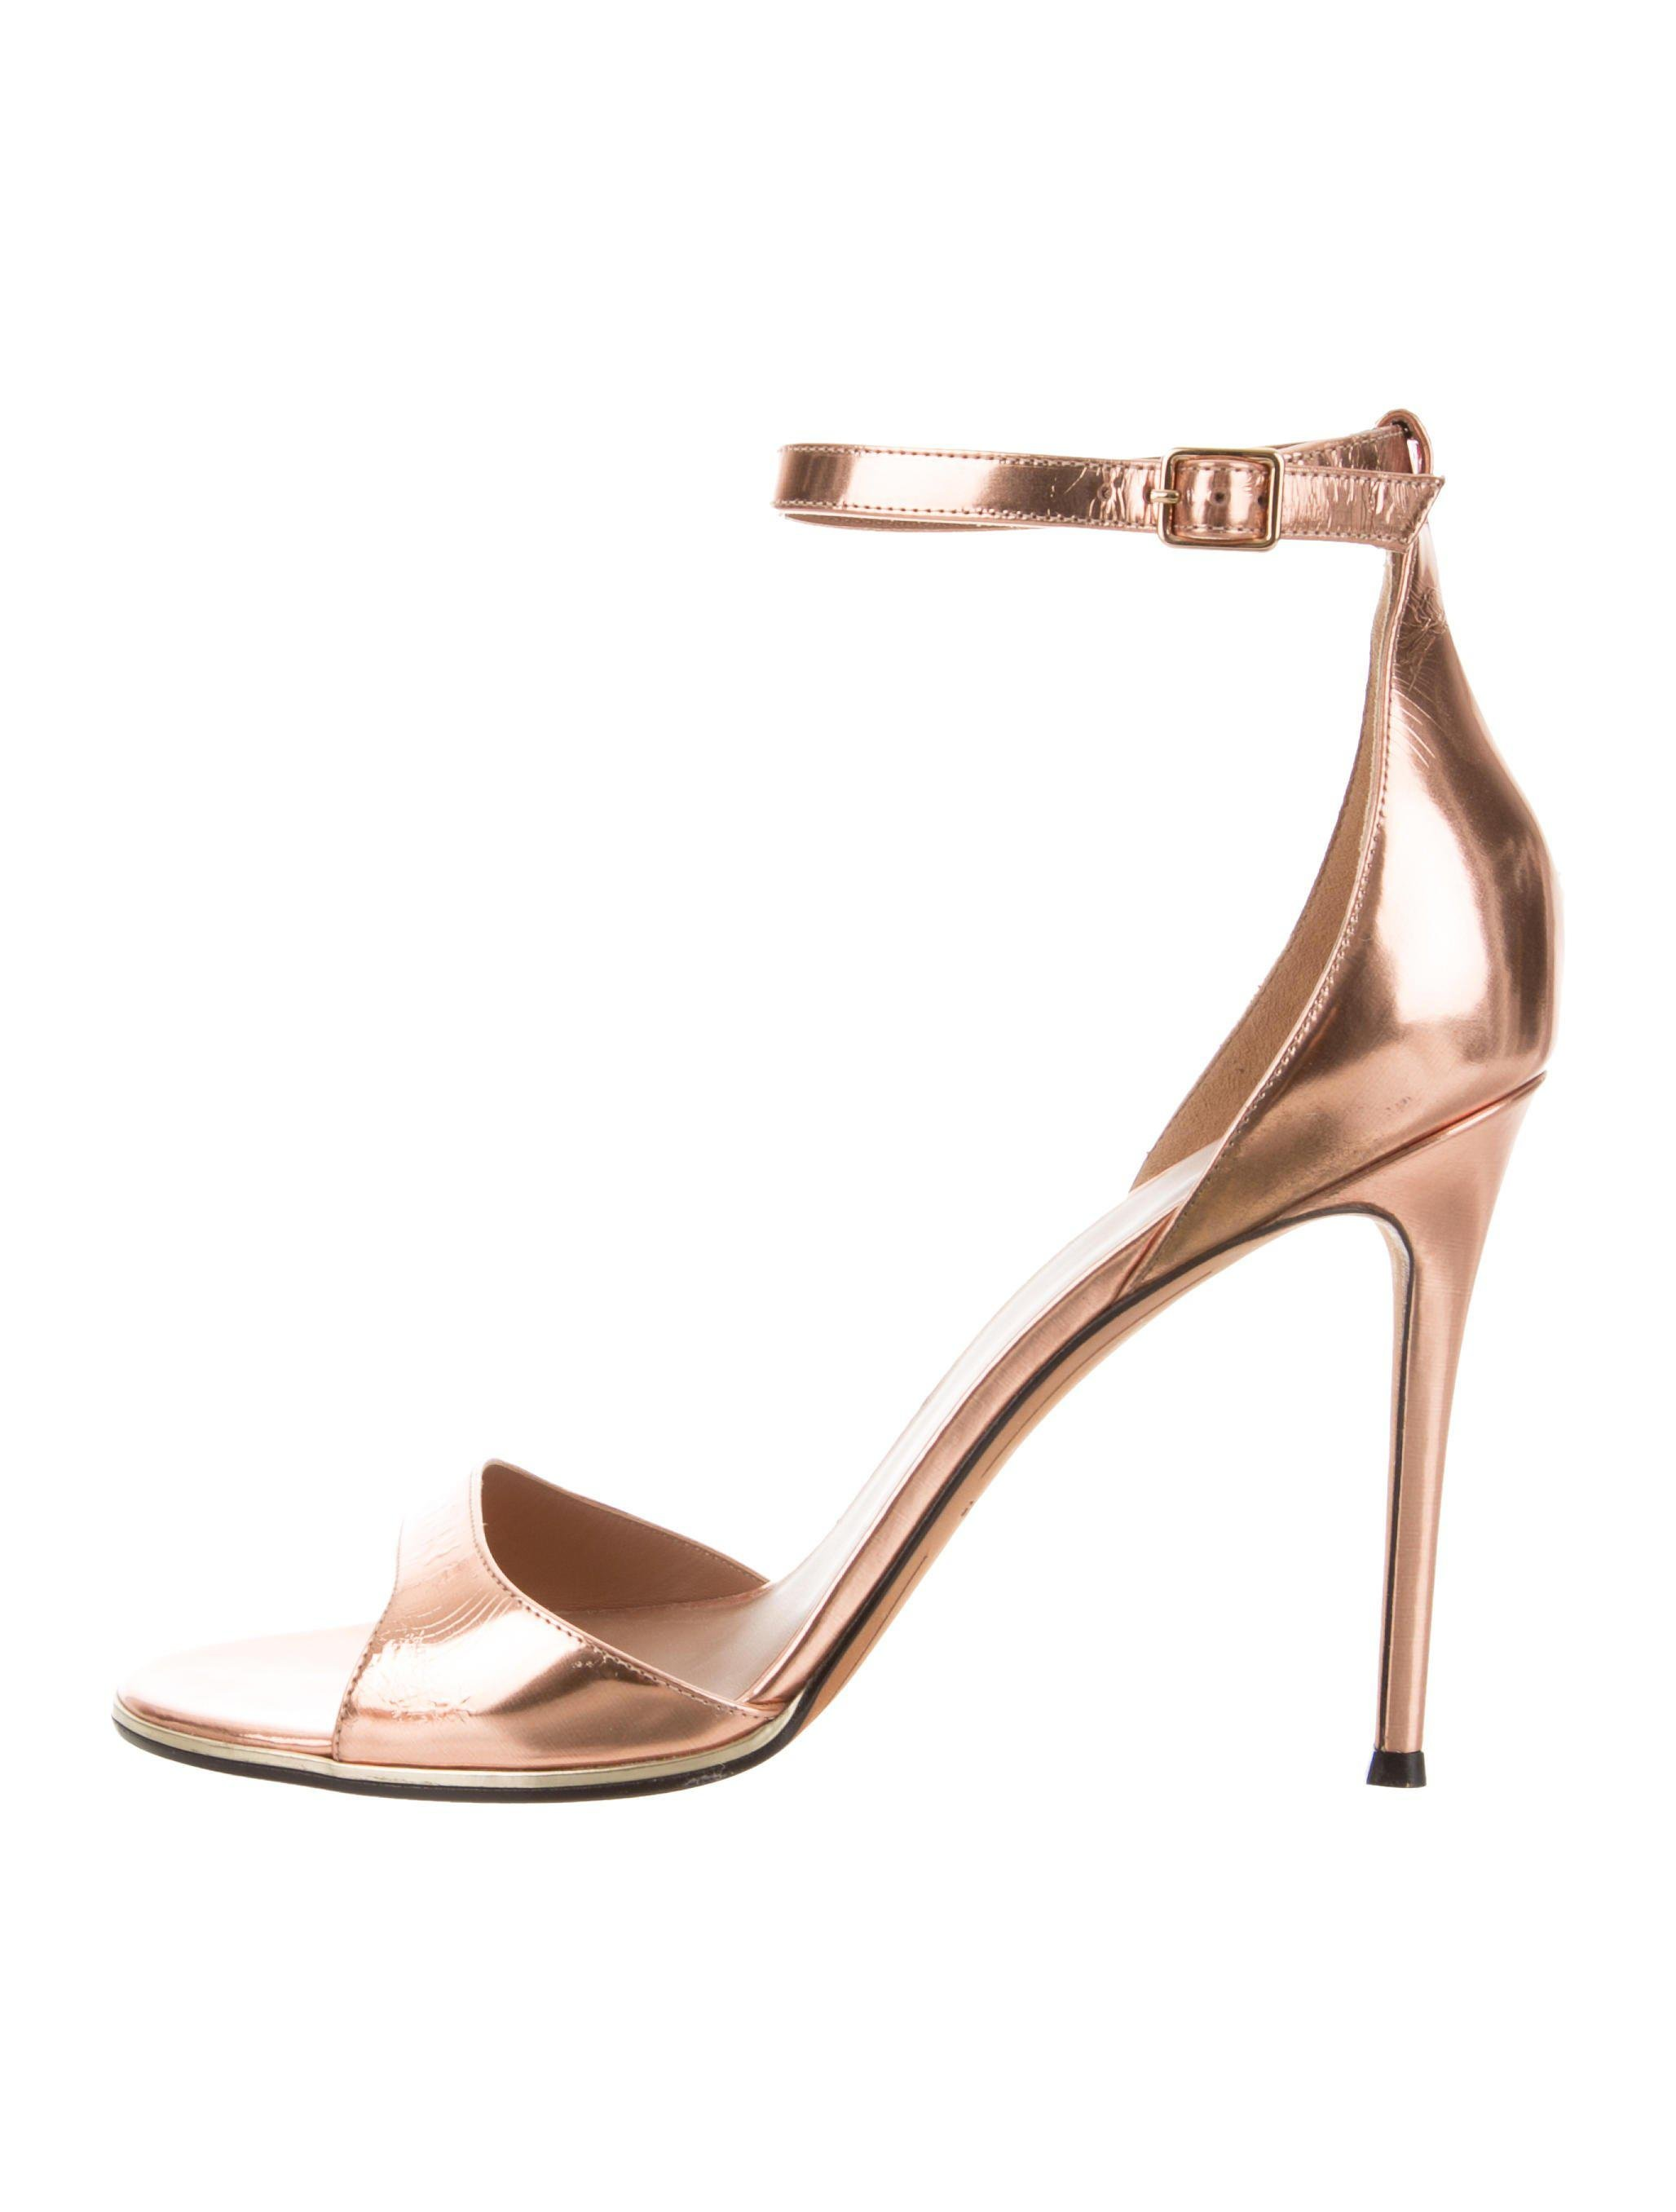 f04309703913 Lyst - Givenchy Ankle Strap Sandals Rose in Metallic